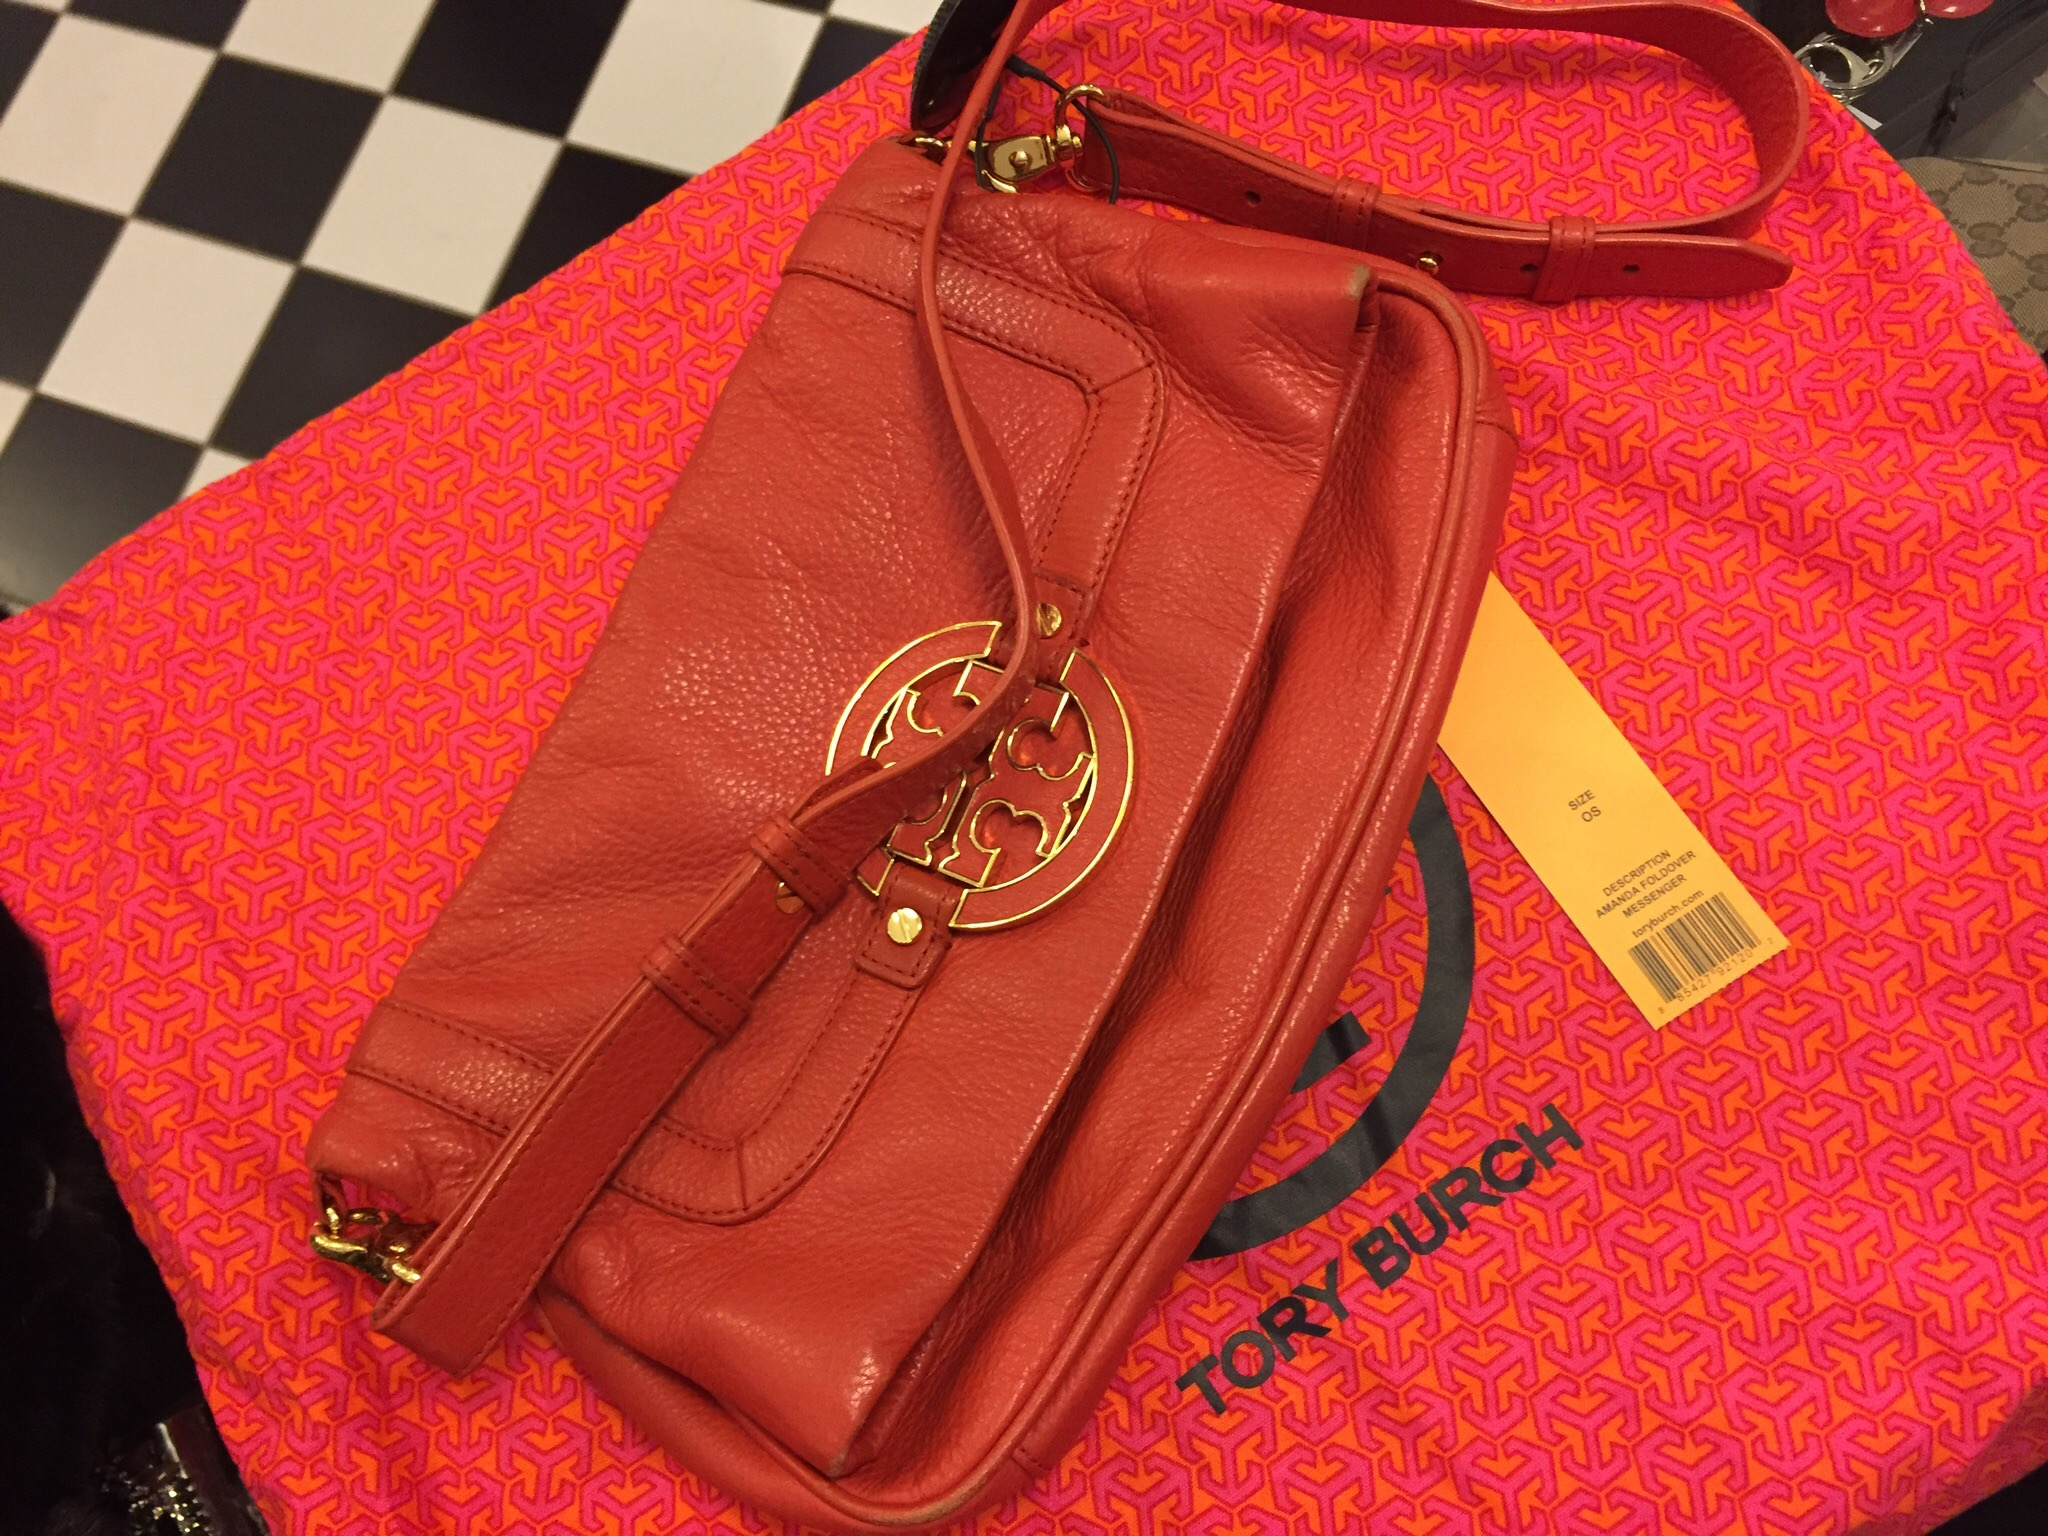 Tory Burch Messenger Väska